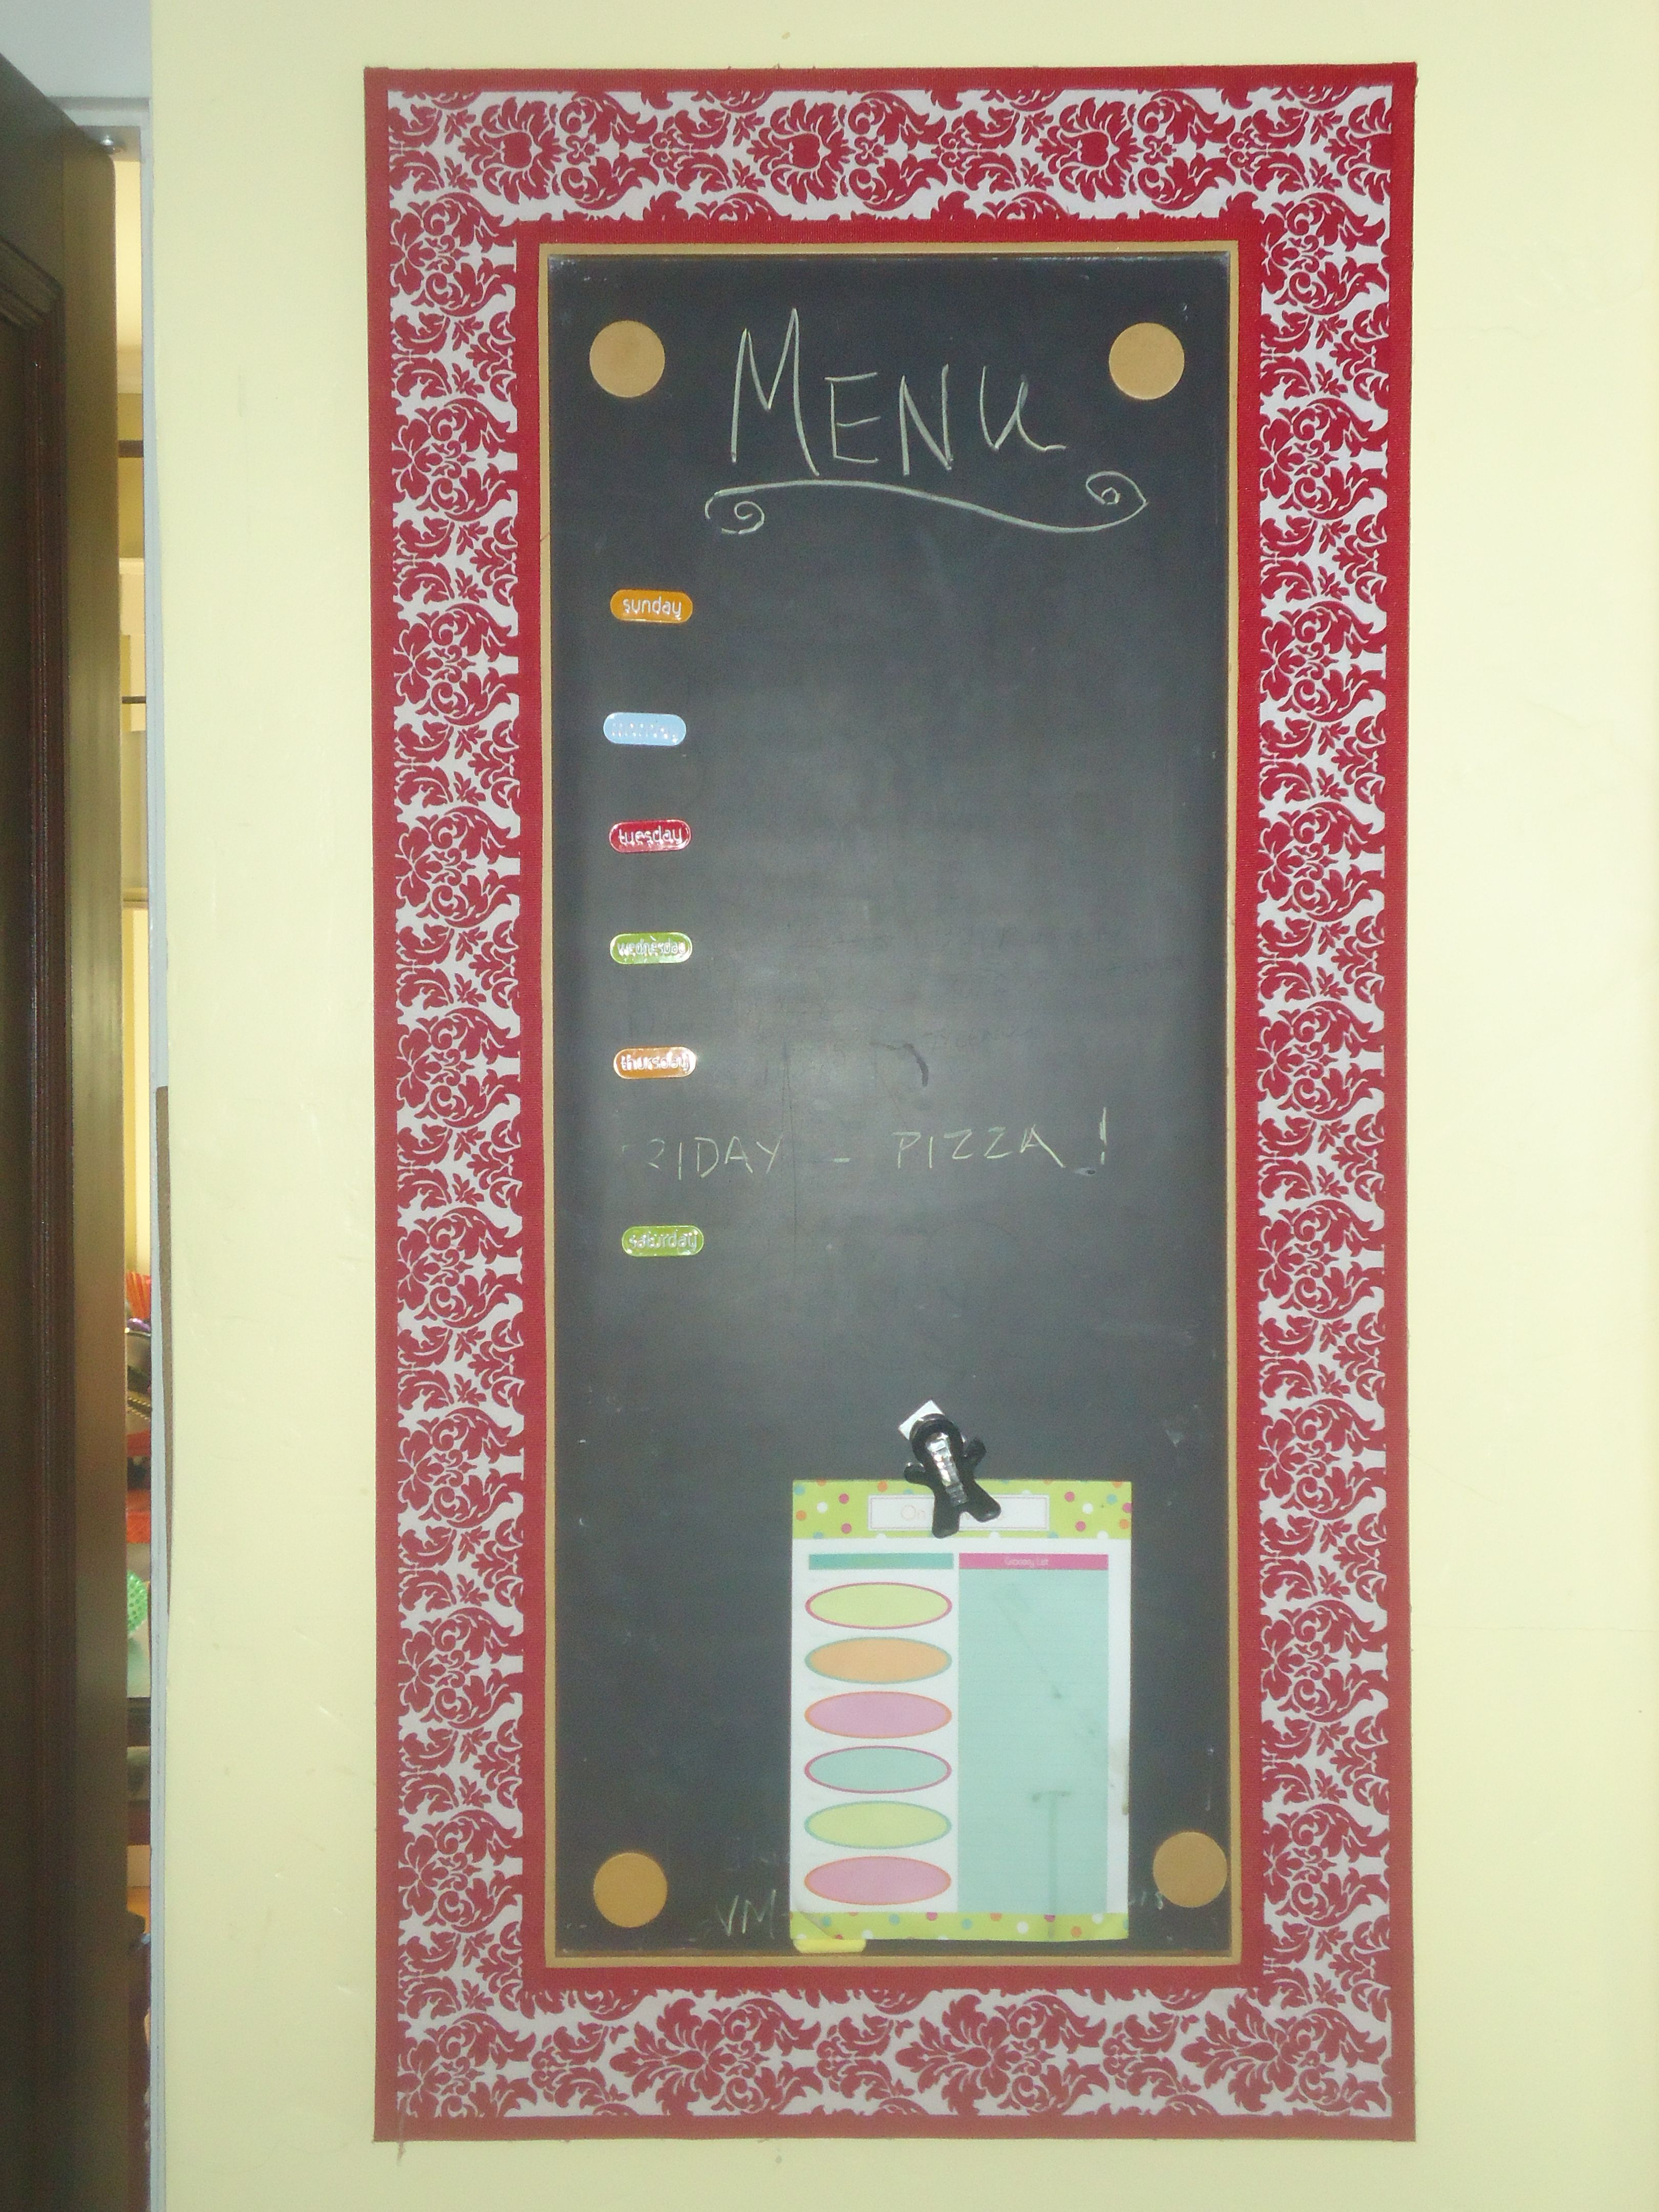 Jazz Up That Corkchalkboard With Fabric & Ribbon, Now A